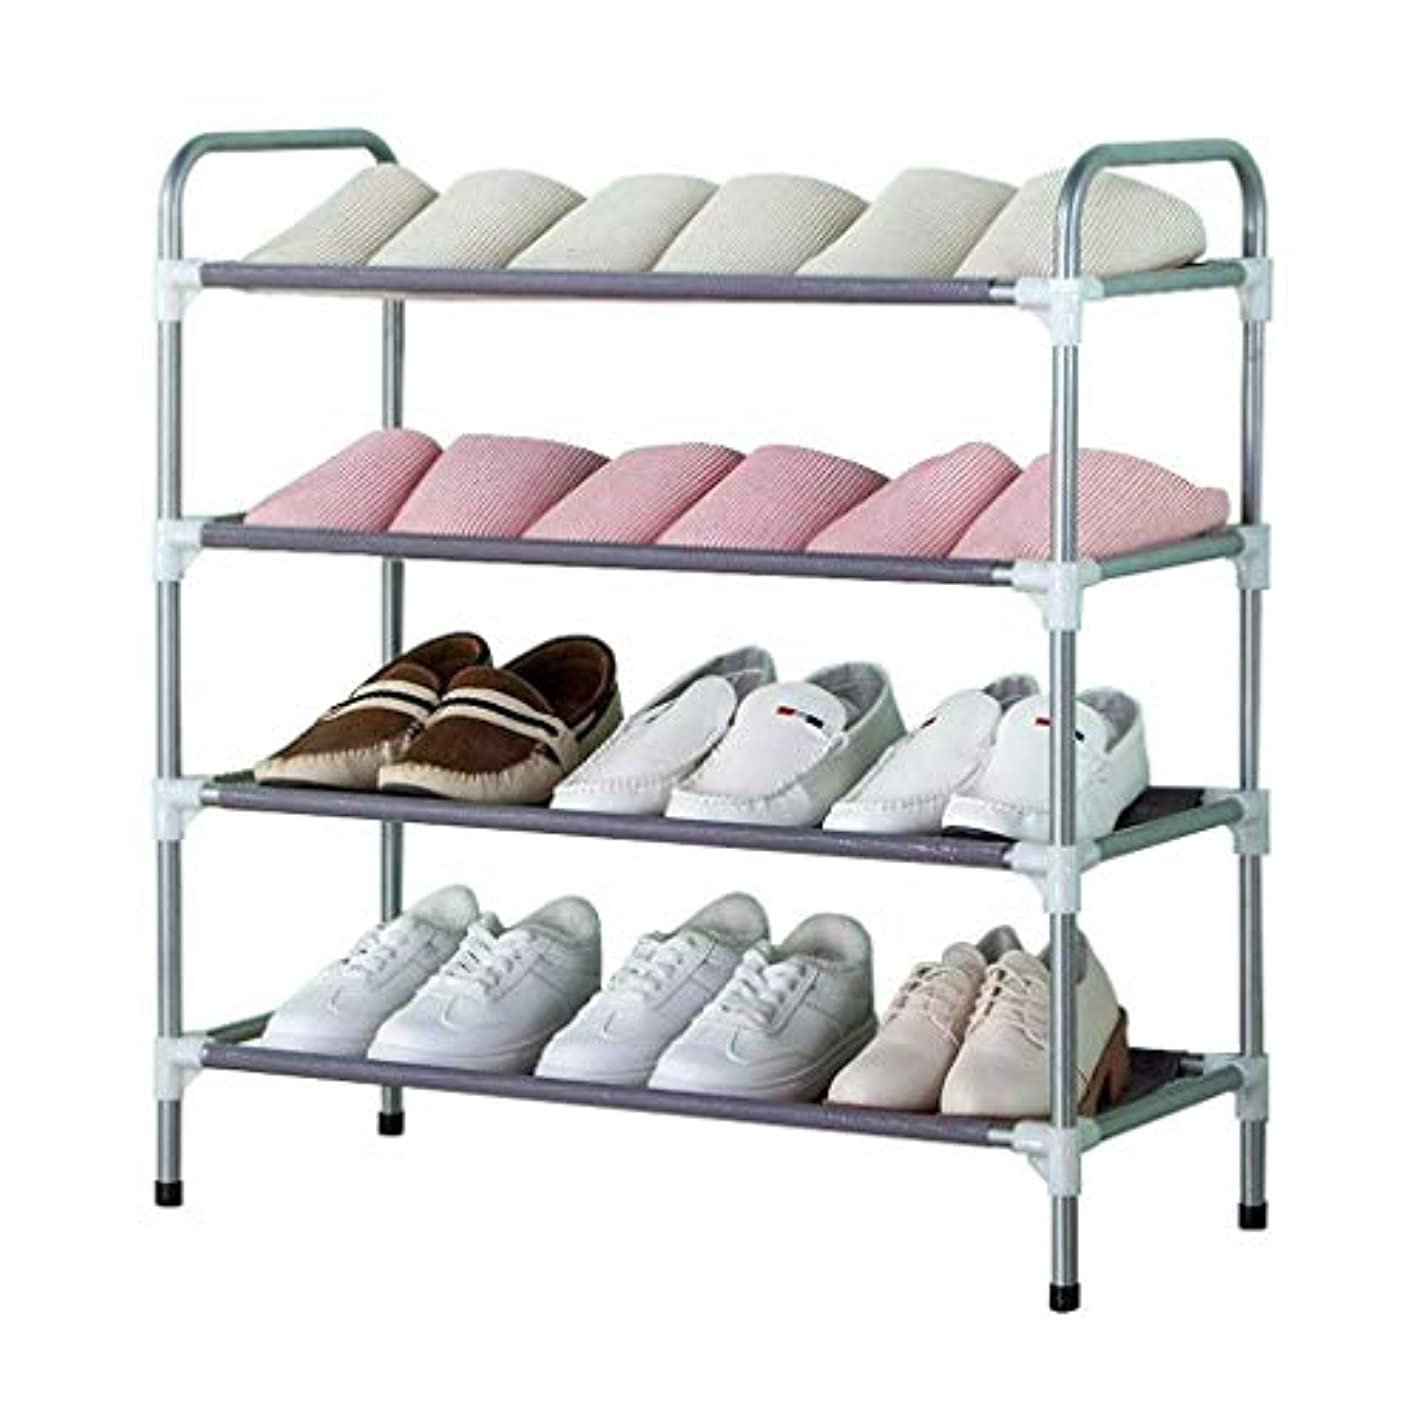 4-Layer Shoe Rack, Dust-Proof Simple Storage Rack Corridor Entrance Saves Space 68×30×105cm